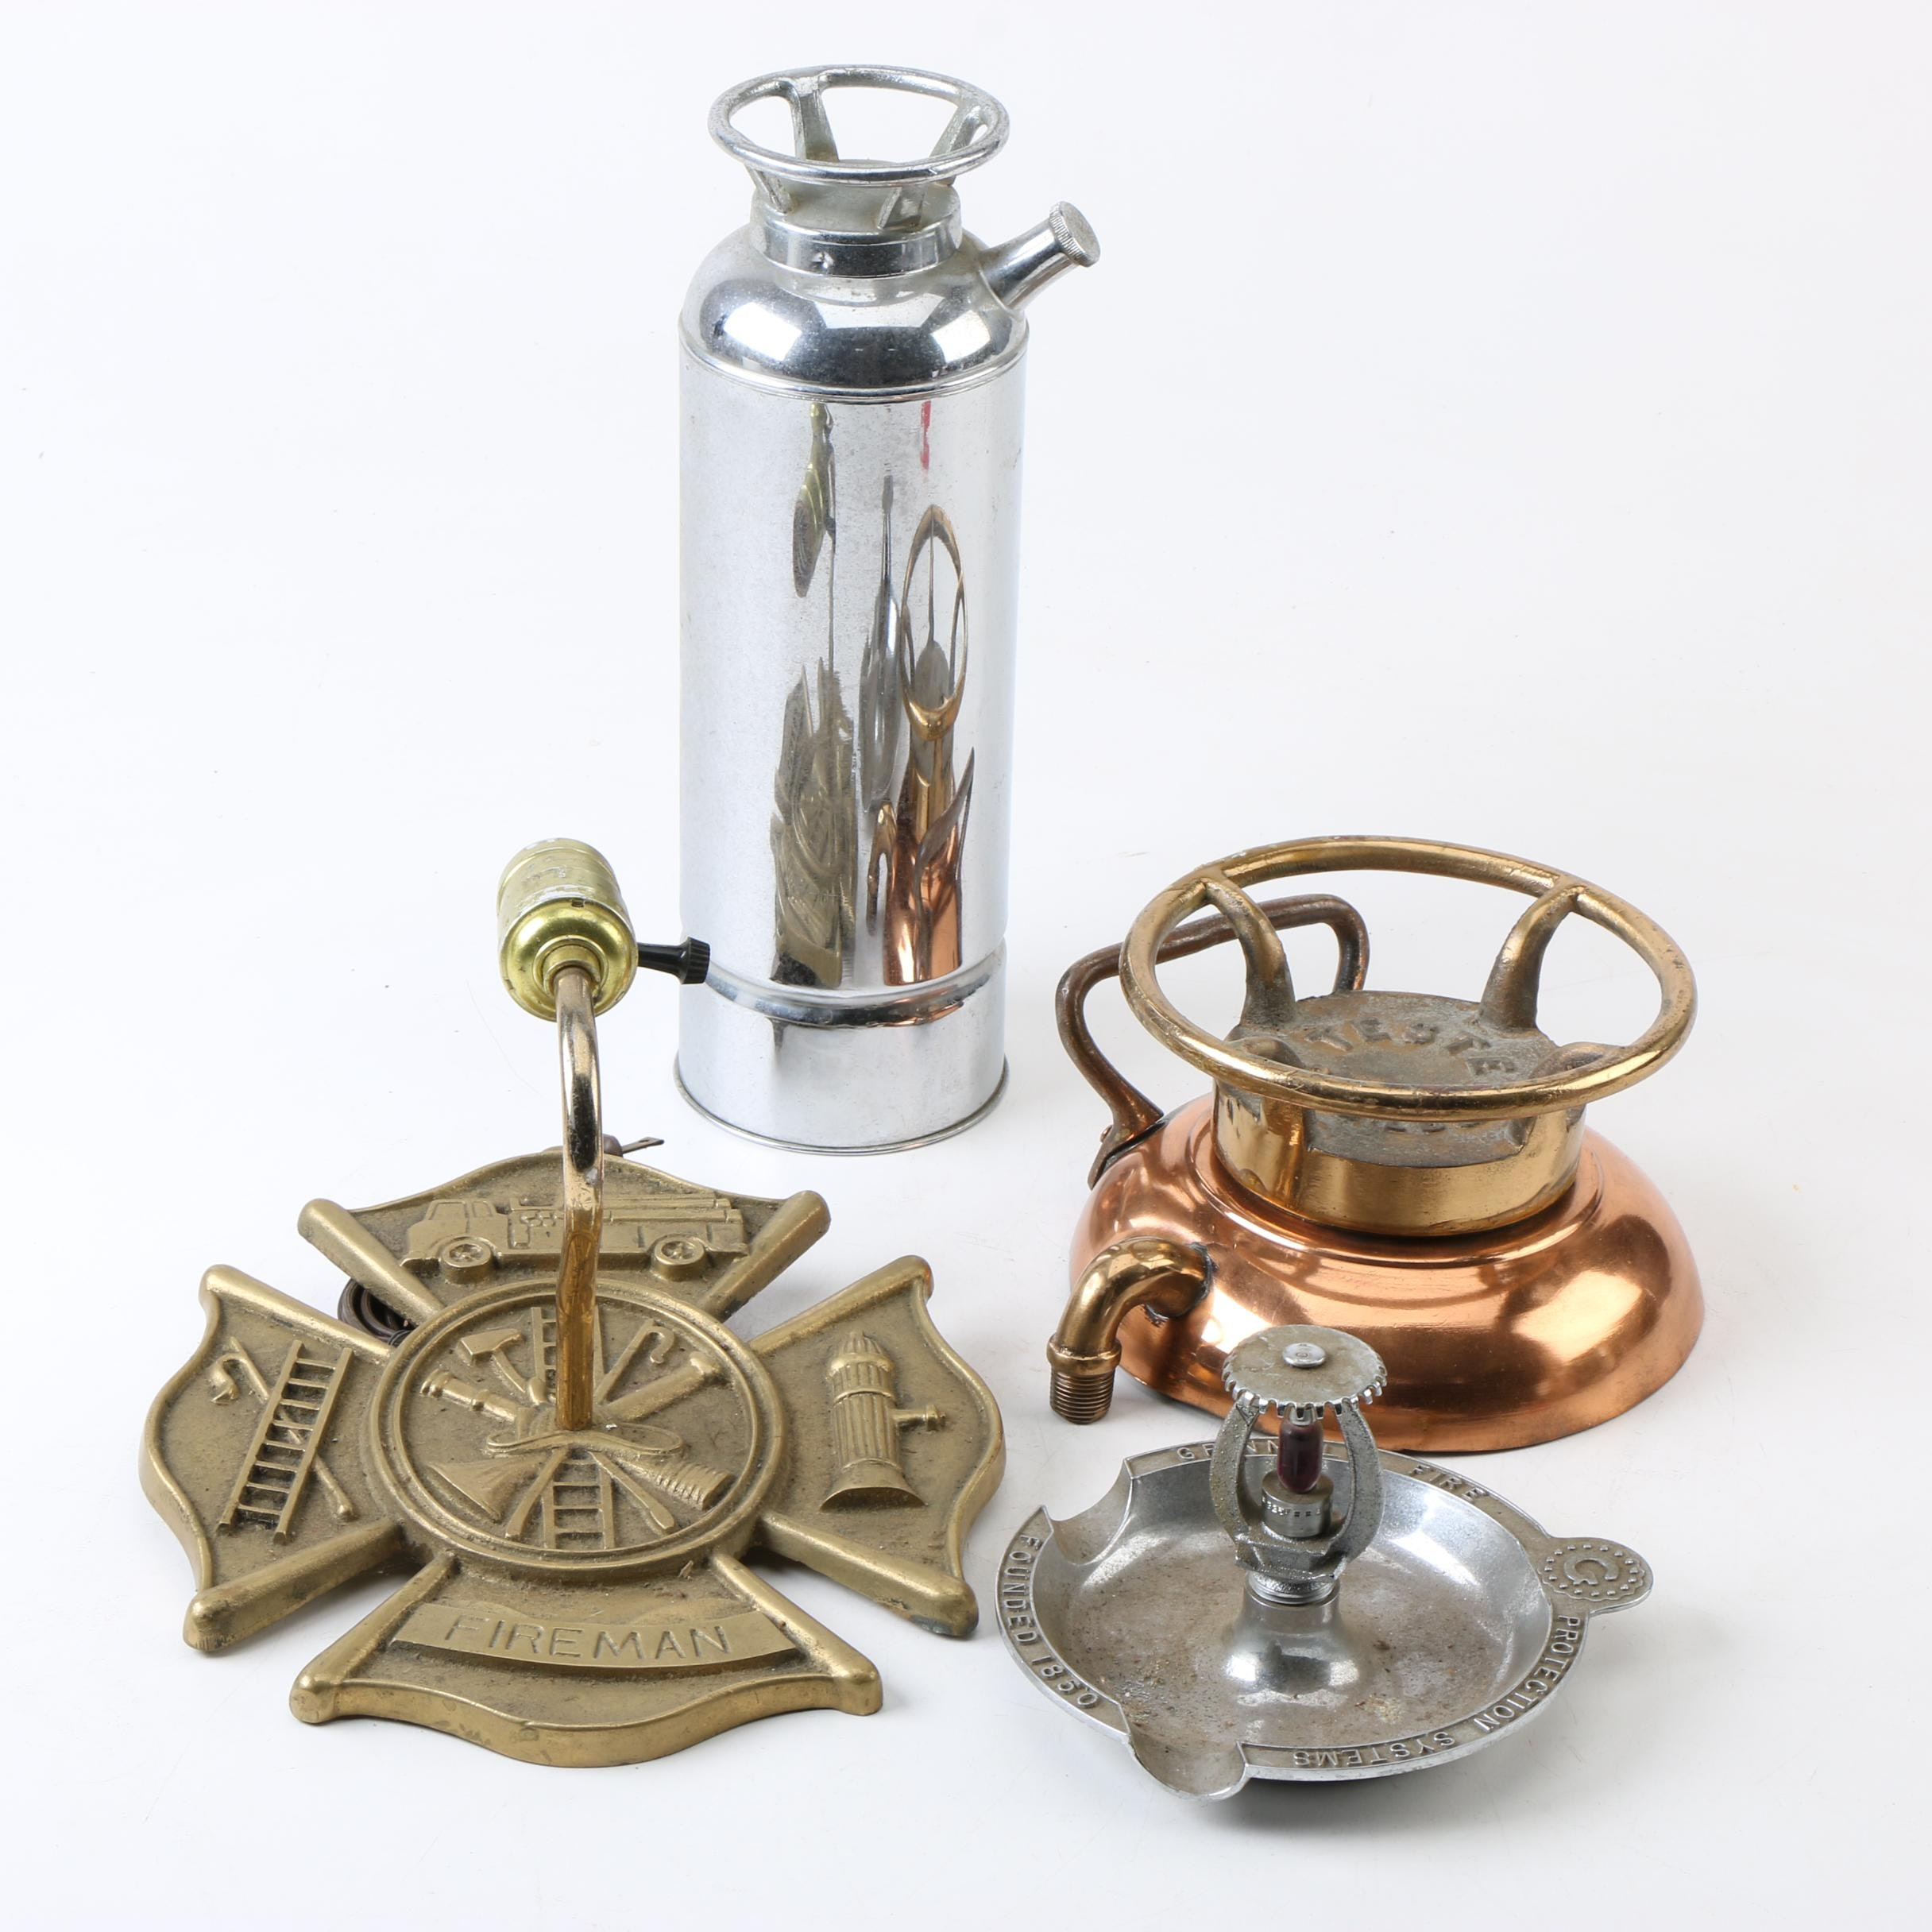 Fire Fighting Décor Including Wall Lamp